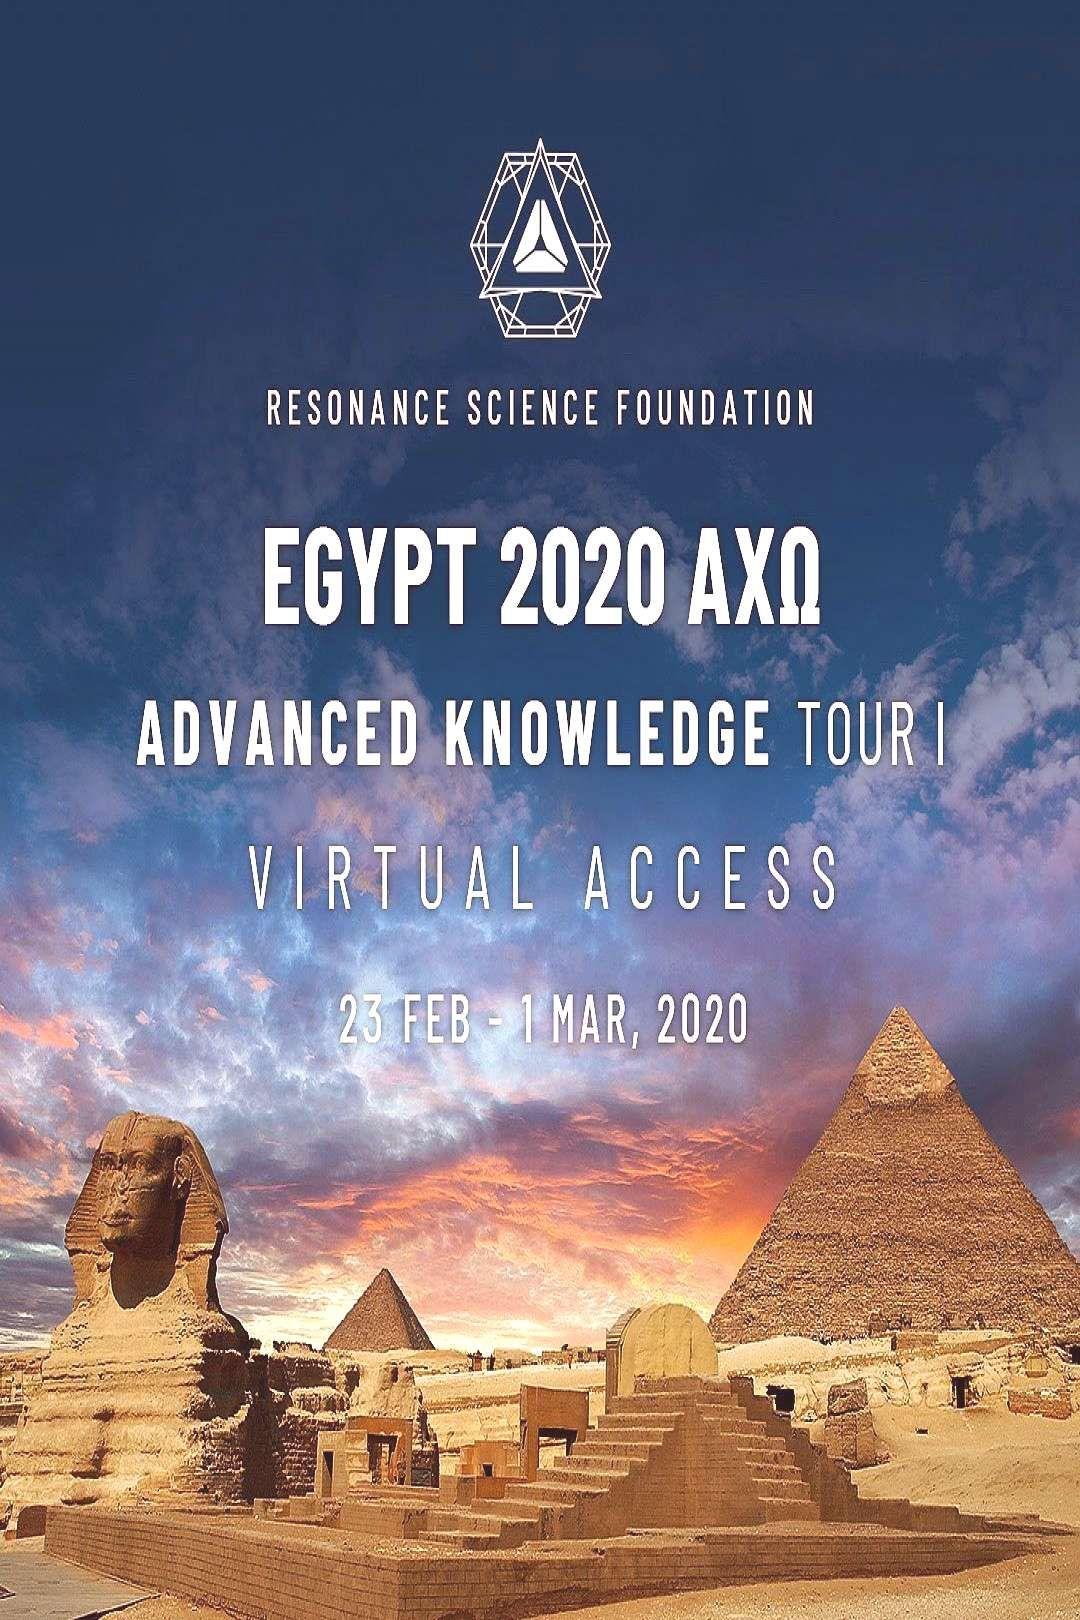 I'm on my way to this epic Resonance Science Foundation Expeditio